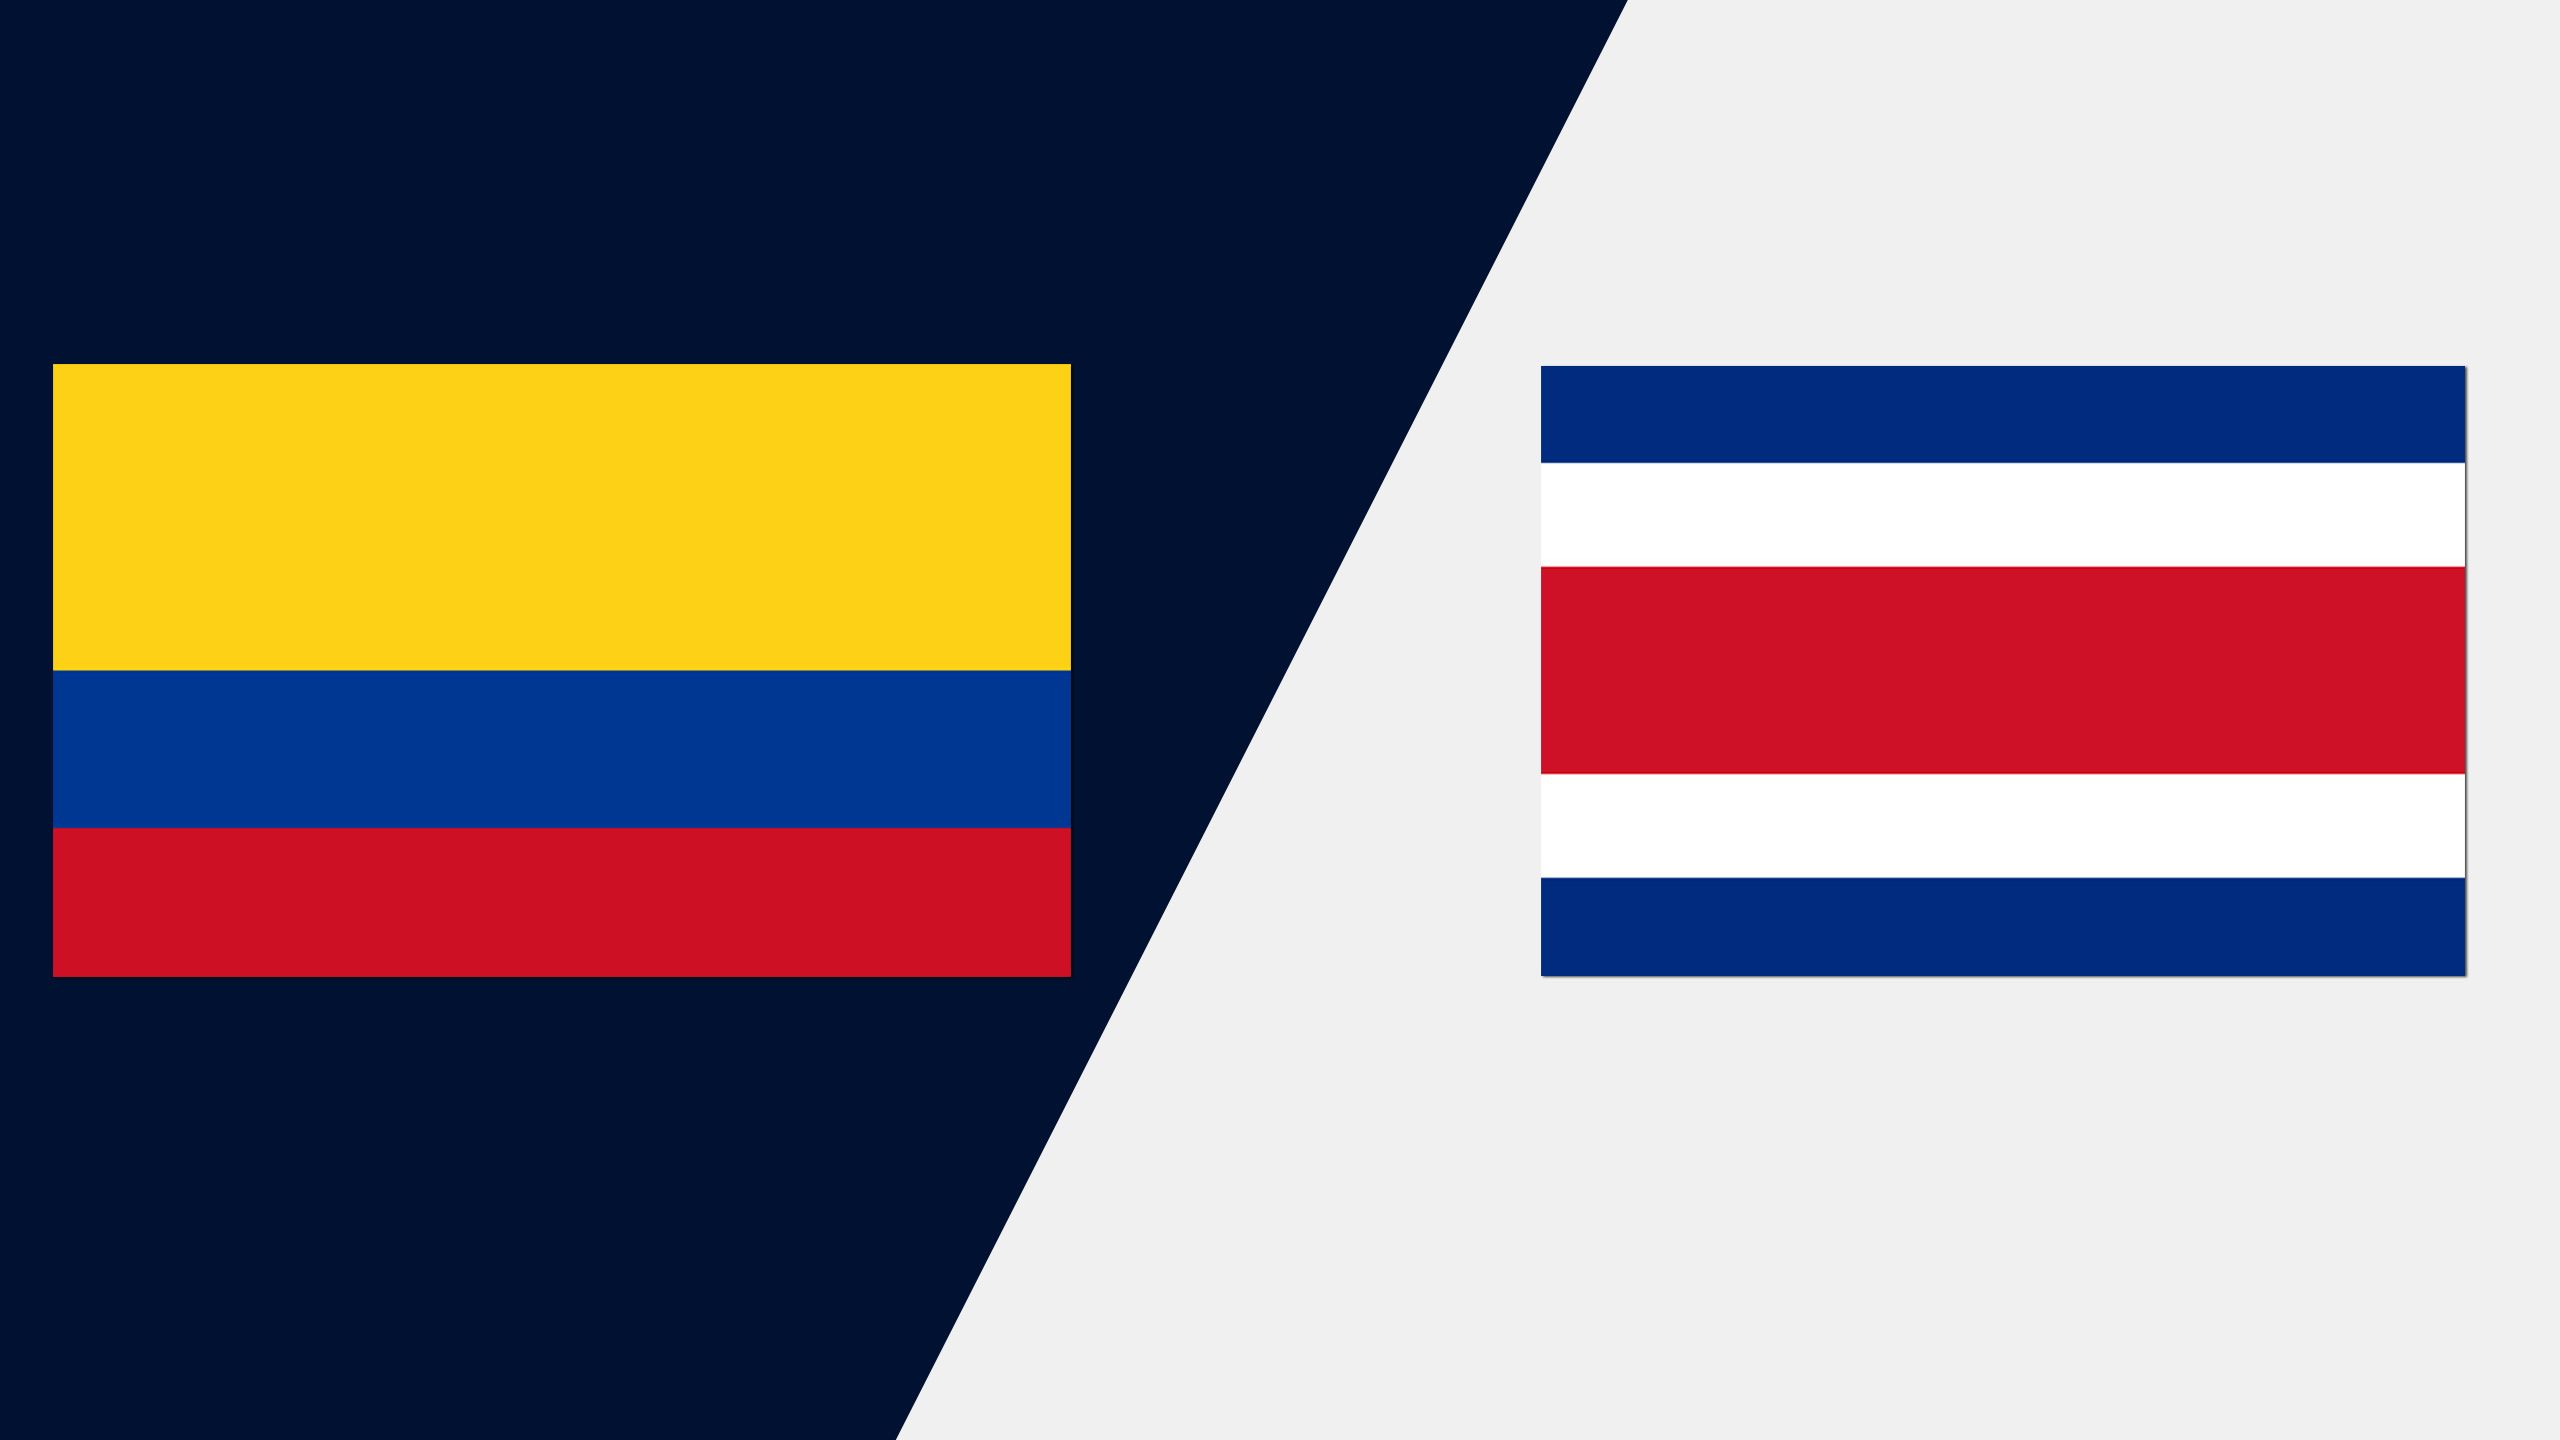 In Spanish - Colombia vs. Costa Rica (Grupo A)